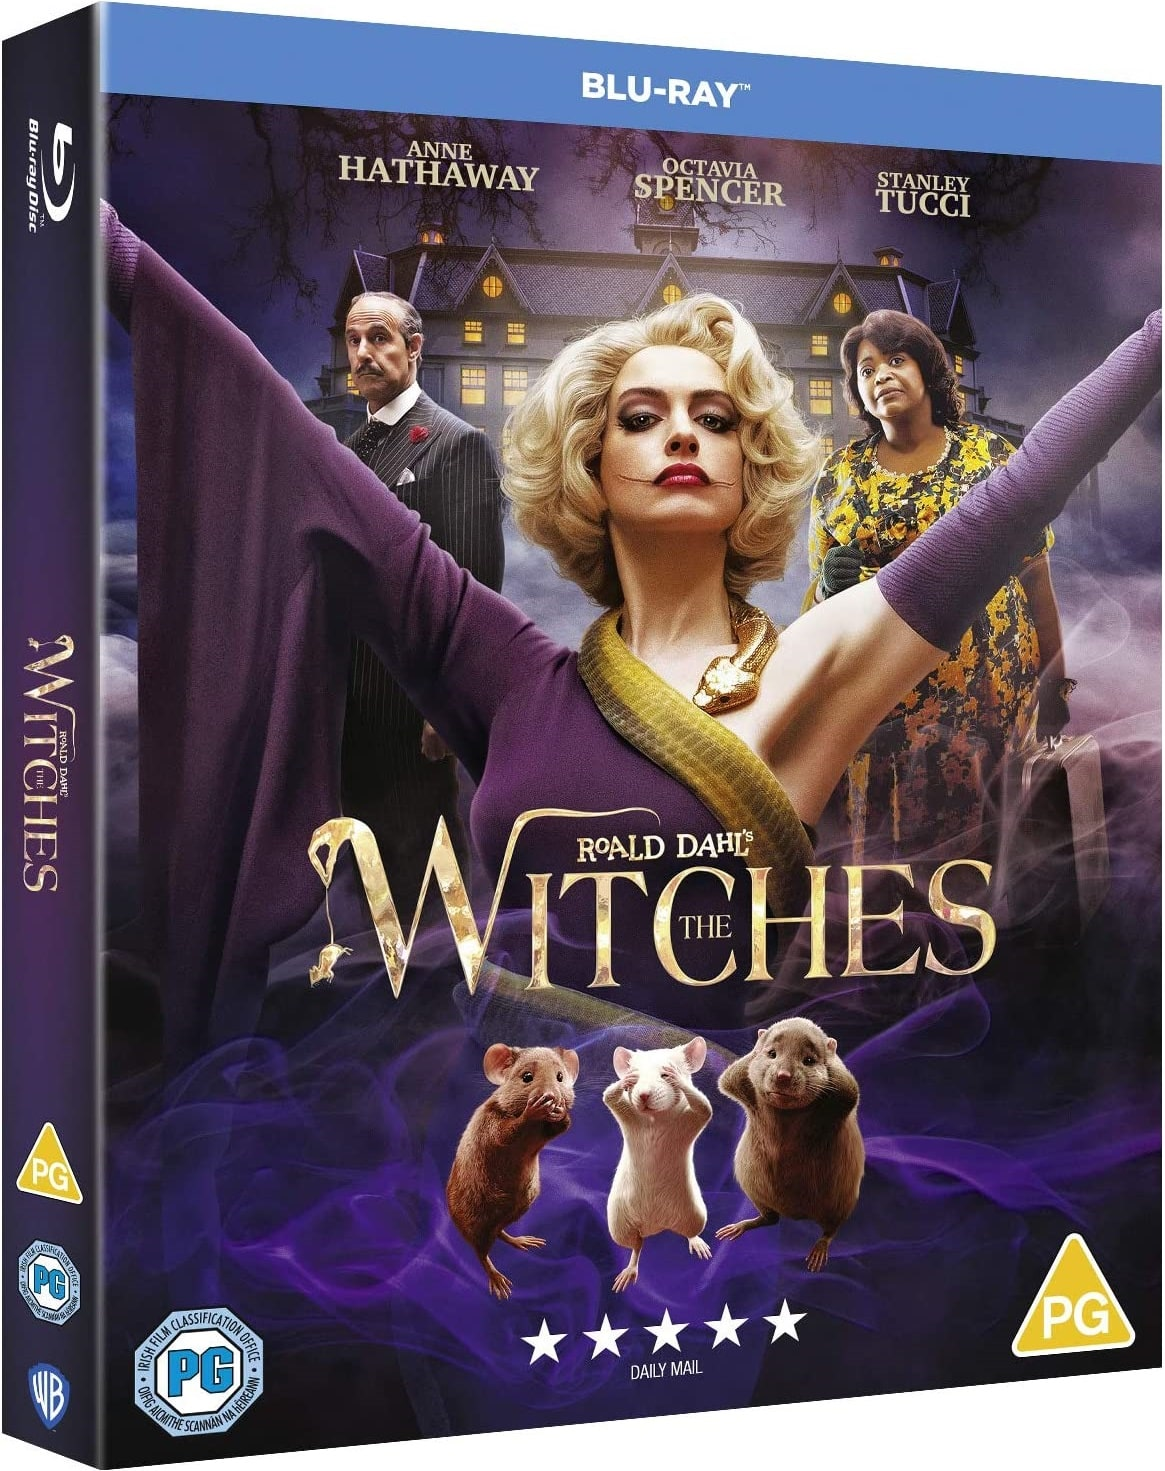 Roald Dahl's The Witches 2020 UK Blu-Ray